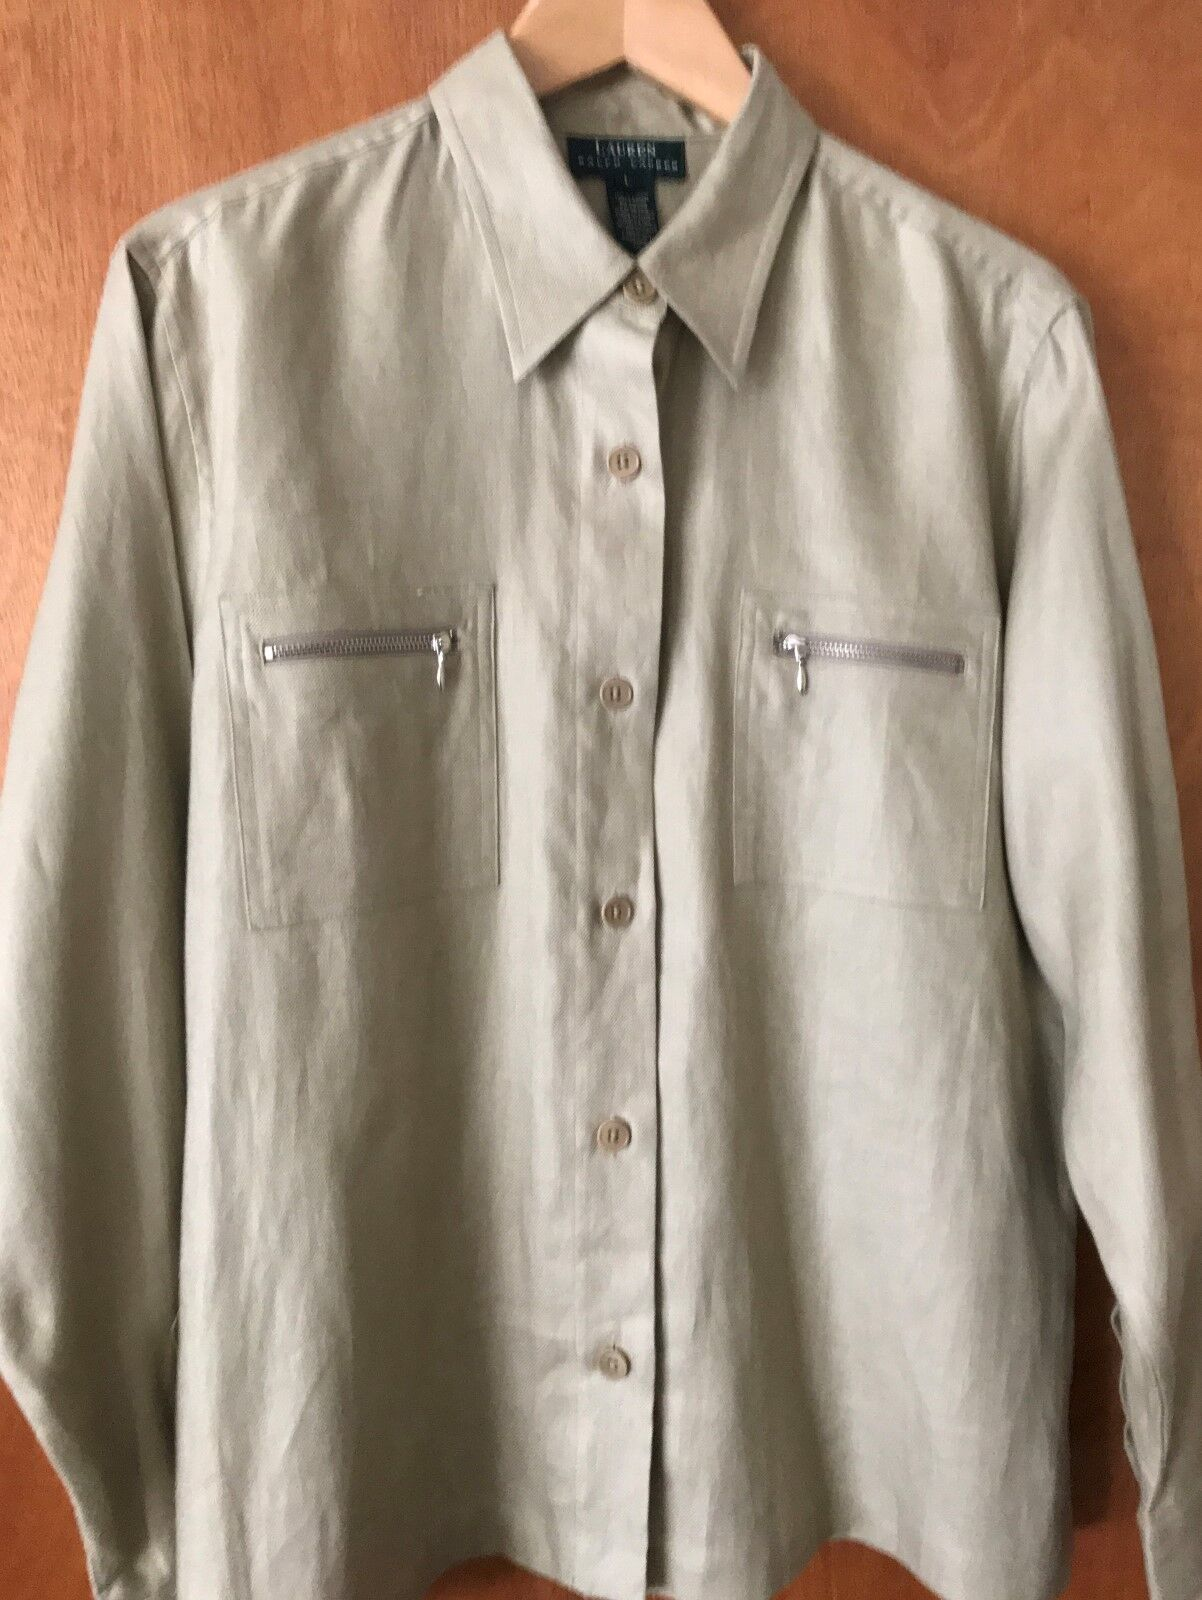 Lauren Ralph Lauren 100%Linen (Woherren) S LMedium Olive Long Sleeve Career Shirt